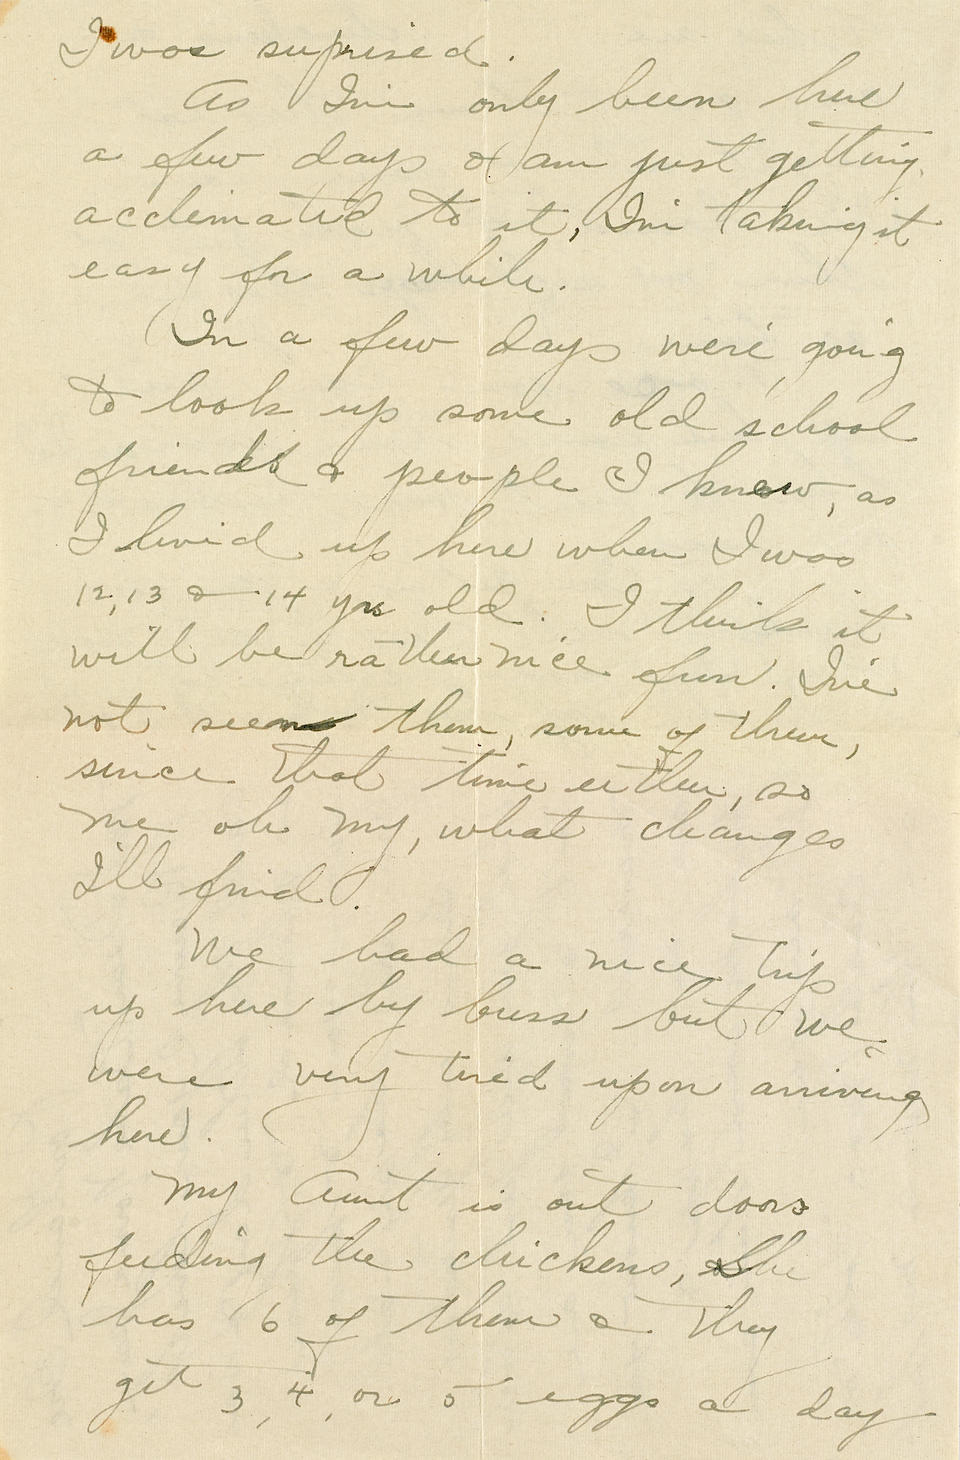 A Marilyn Monroe letter from her mother, Gladys Baker